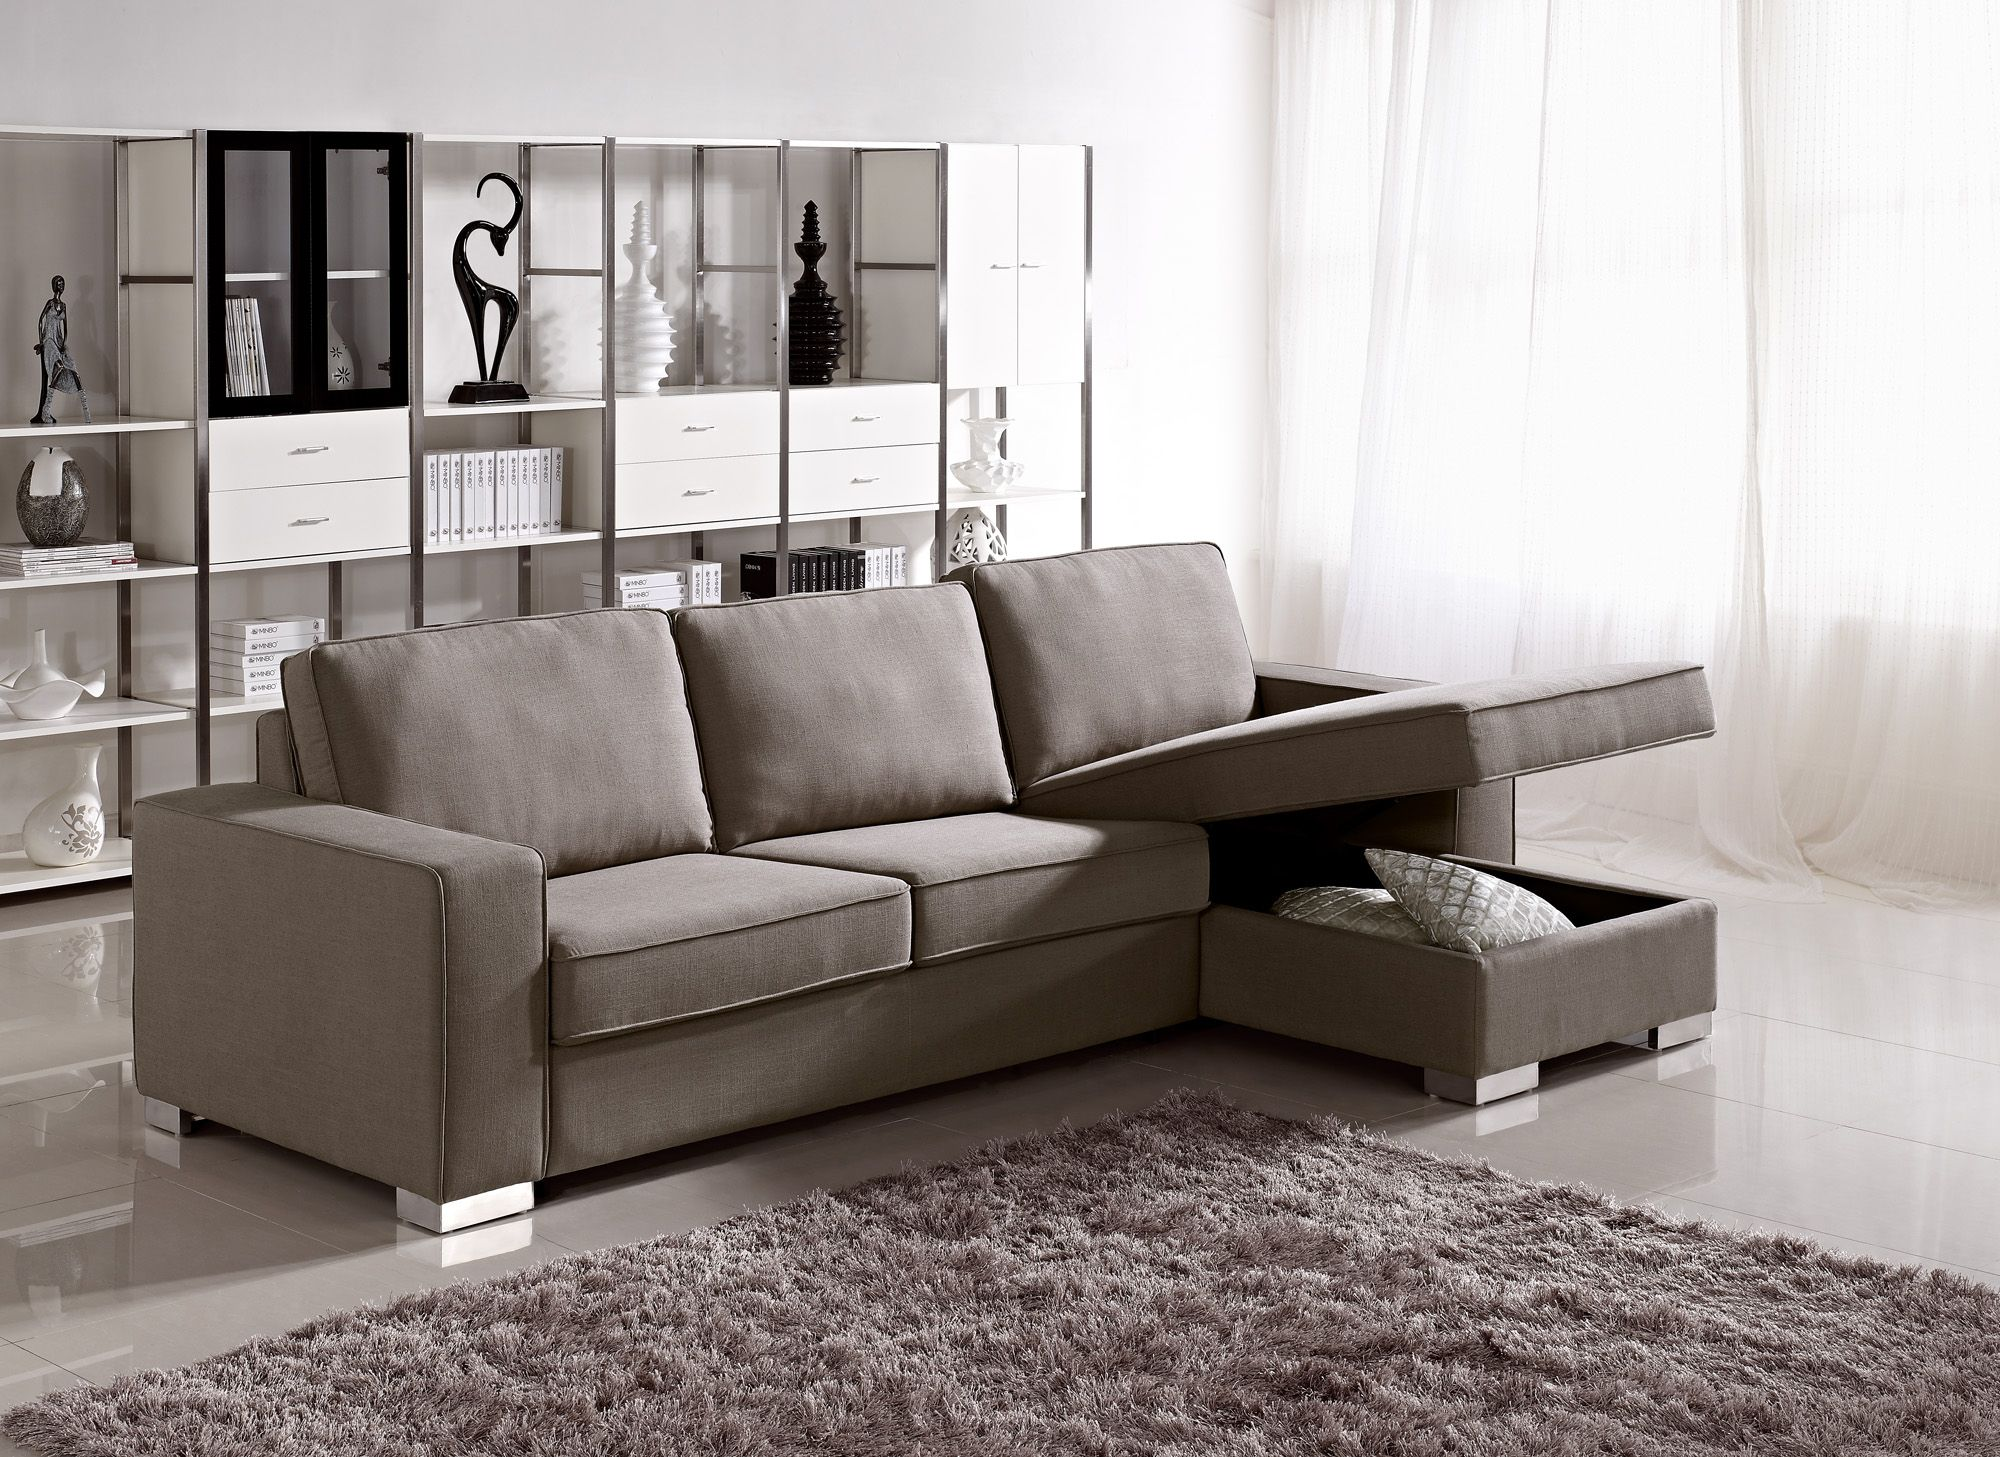 Apartment Size Grey Fabric Storage Sectional With Easy Pull Out Bed Houston Texas Prime Clic Design Inc Italian Modern Furniture Luxury Designer